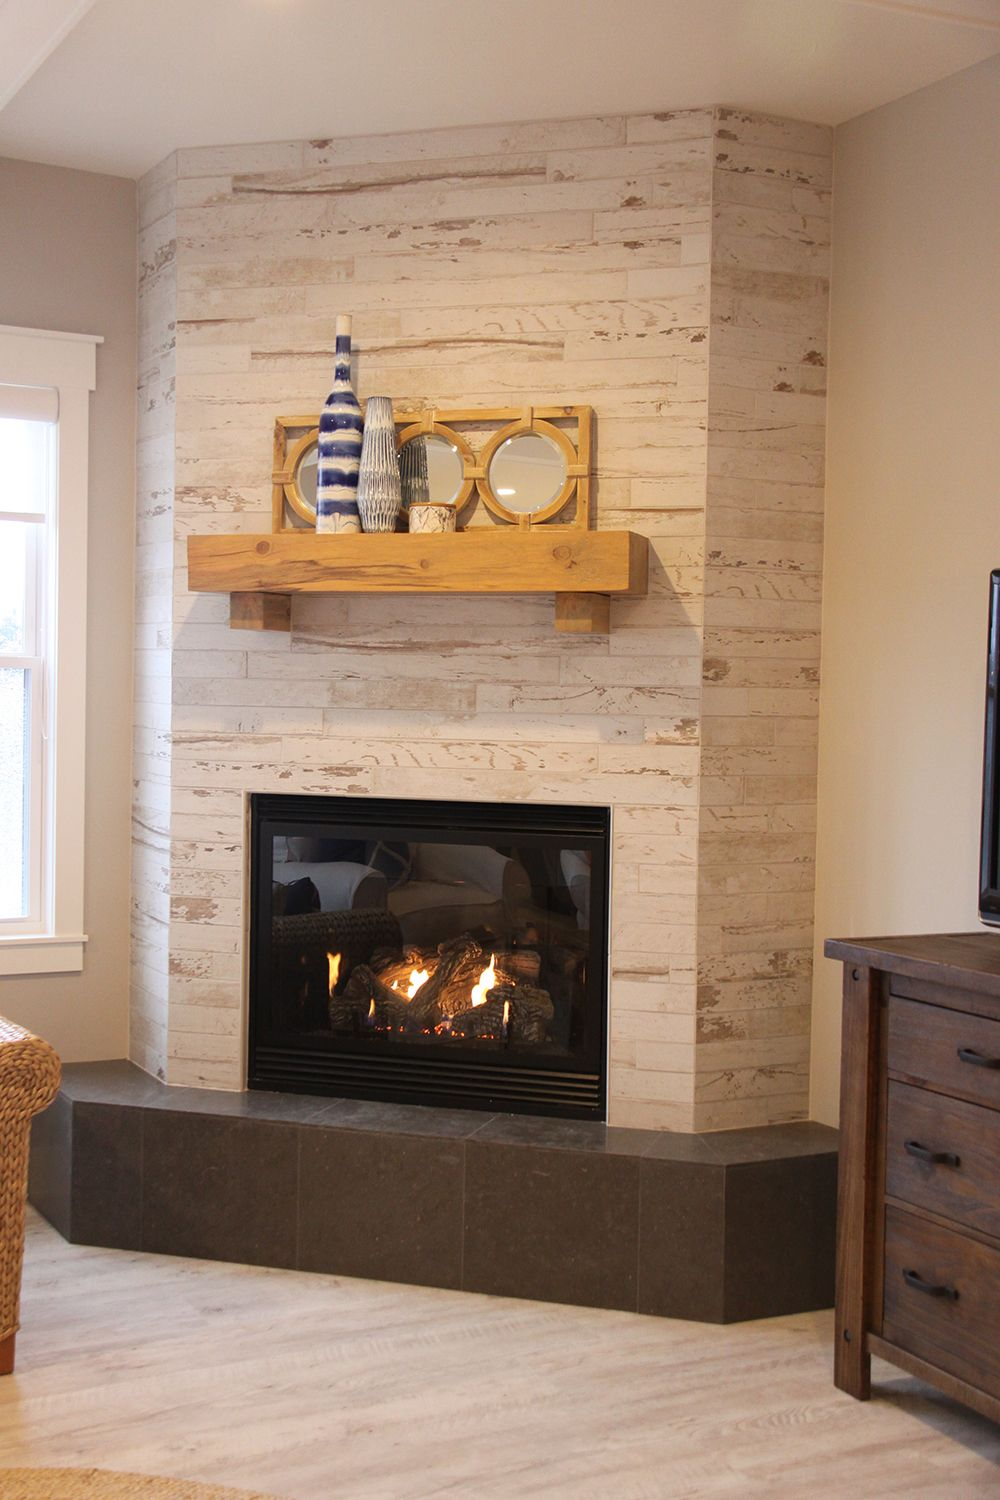 Wood Look Ceramic Tile Corner Fireplace | reno reno | Pinterest ...